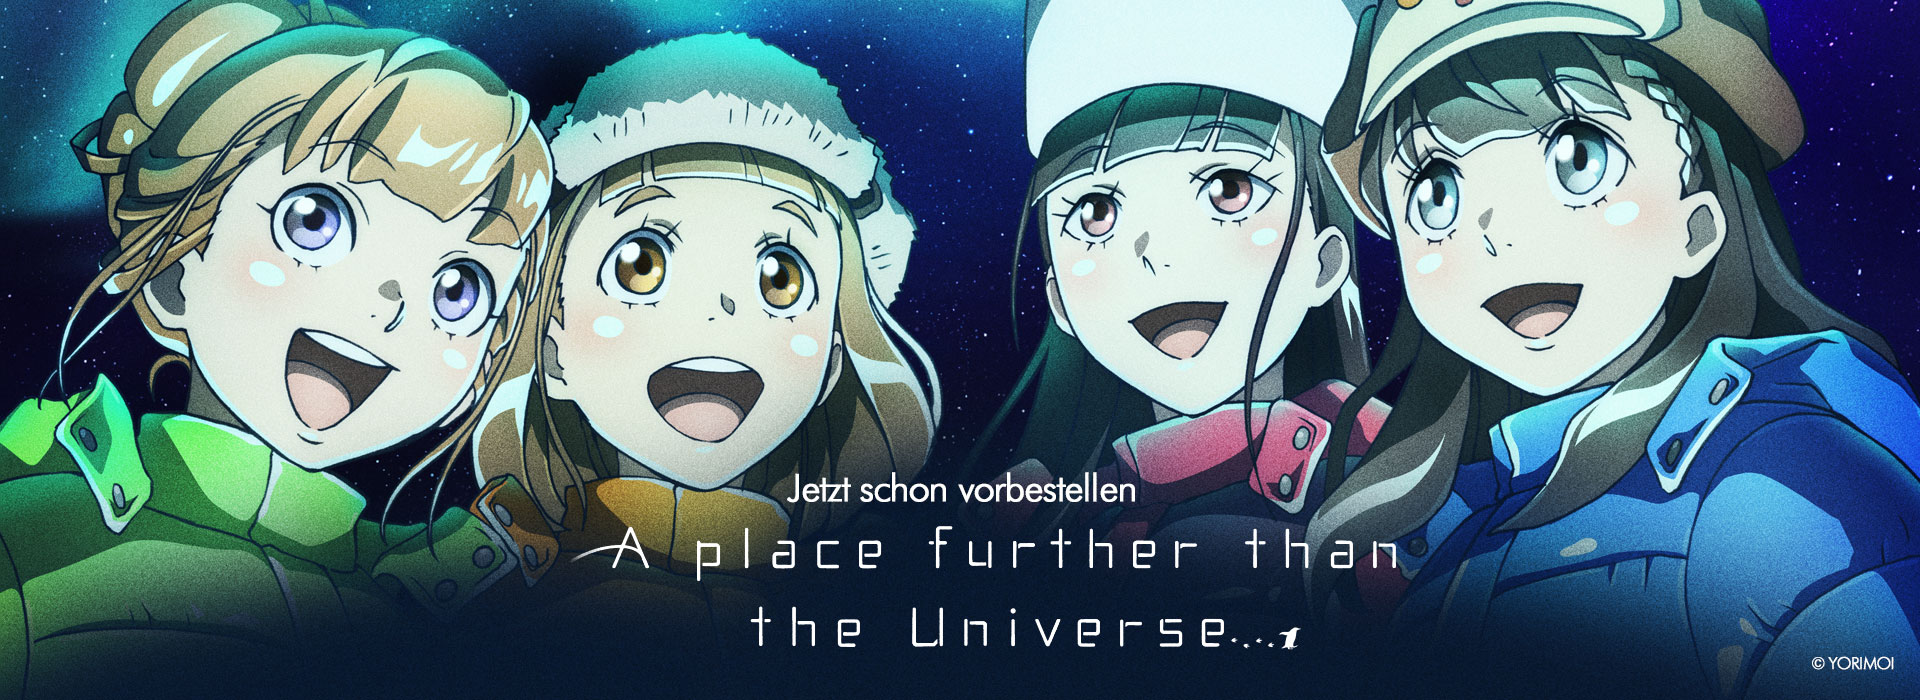 Teaser A Place further than the Universe